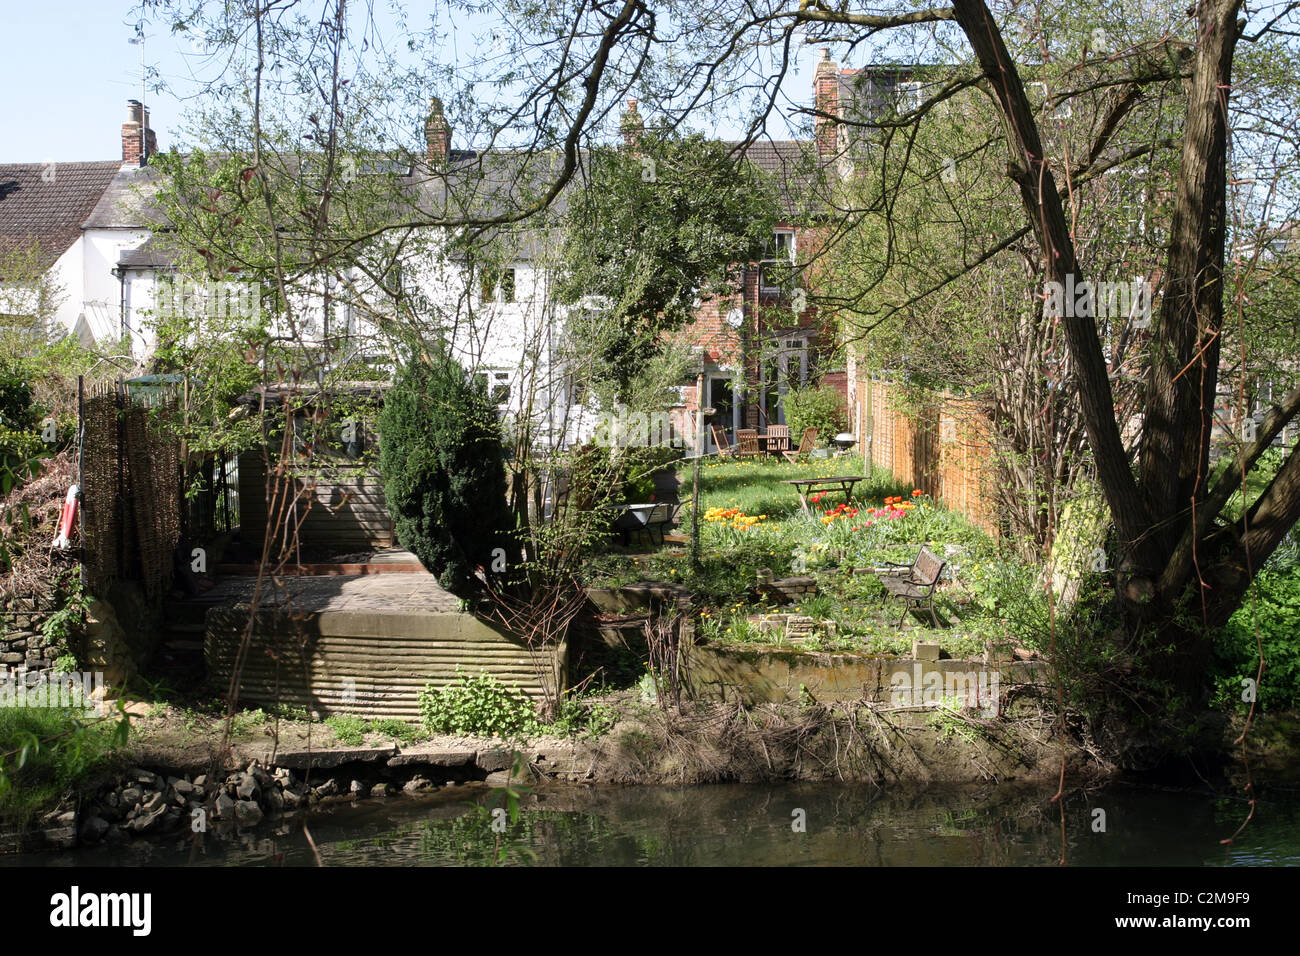 Riverside House, Thames Tributary, Oxford, England Stock Photo